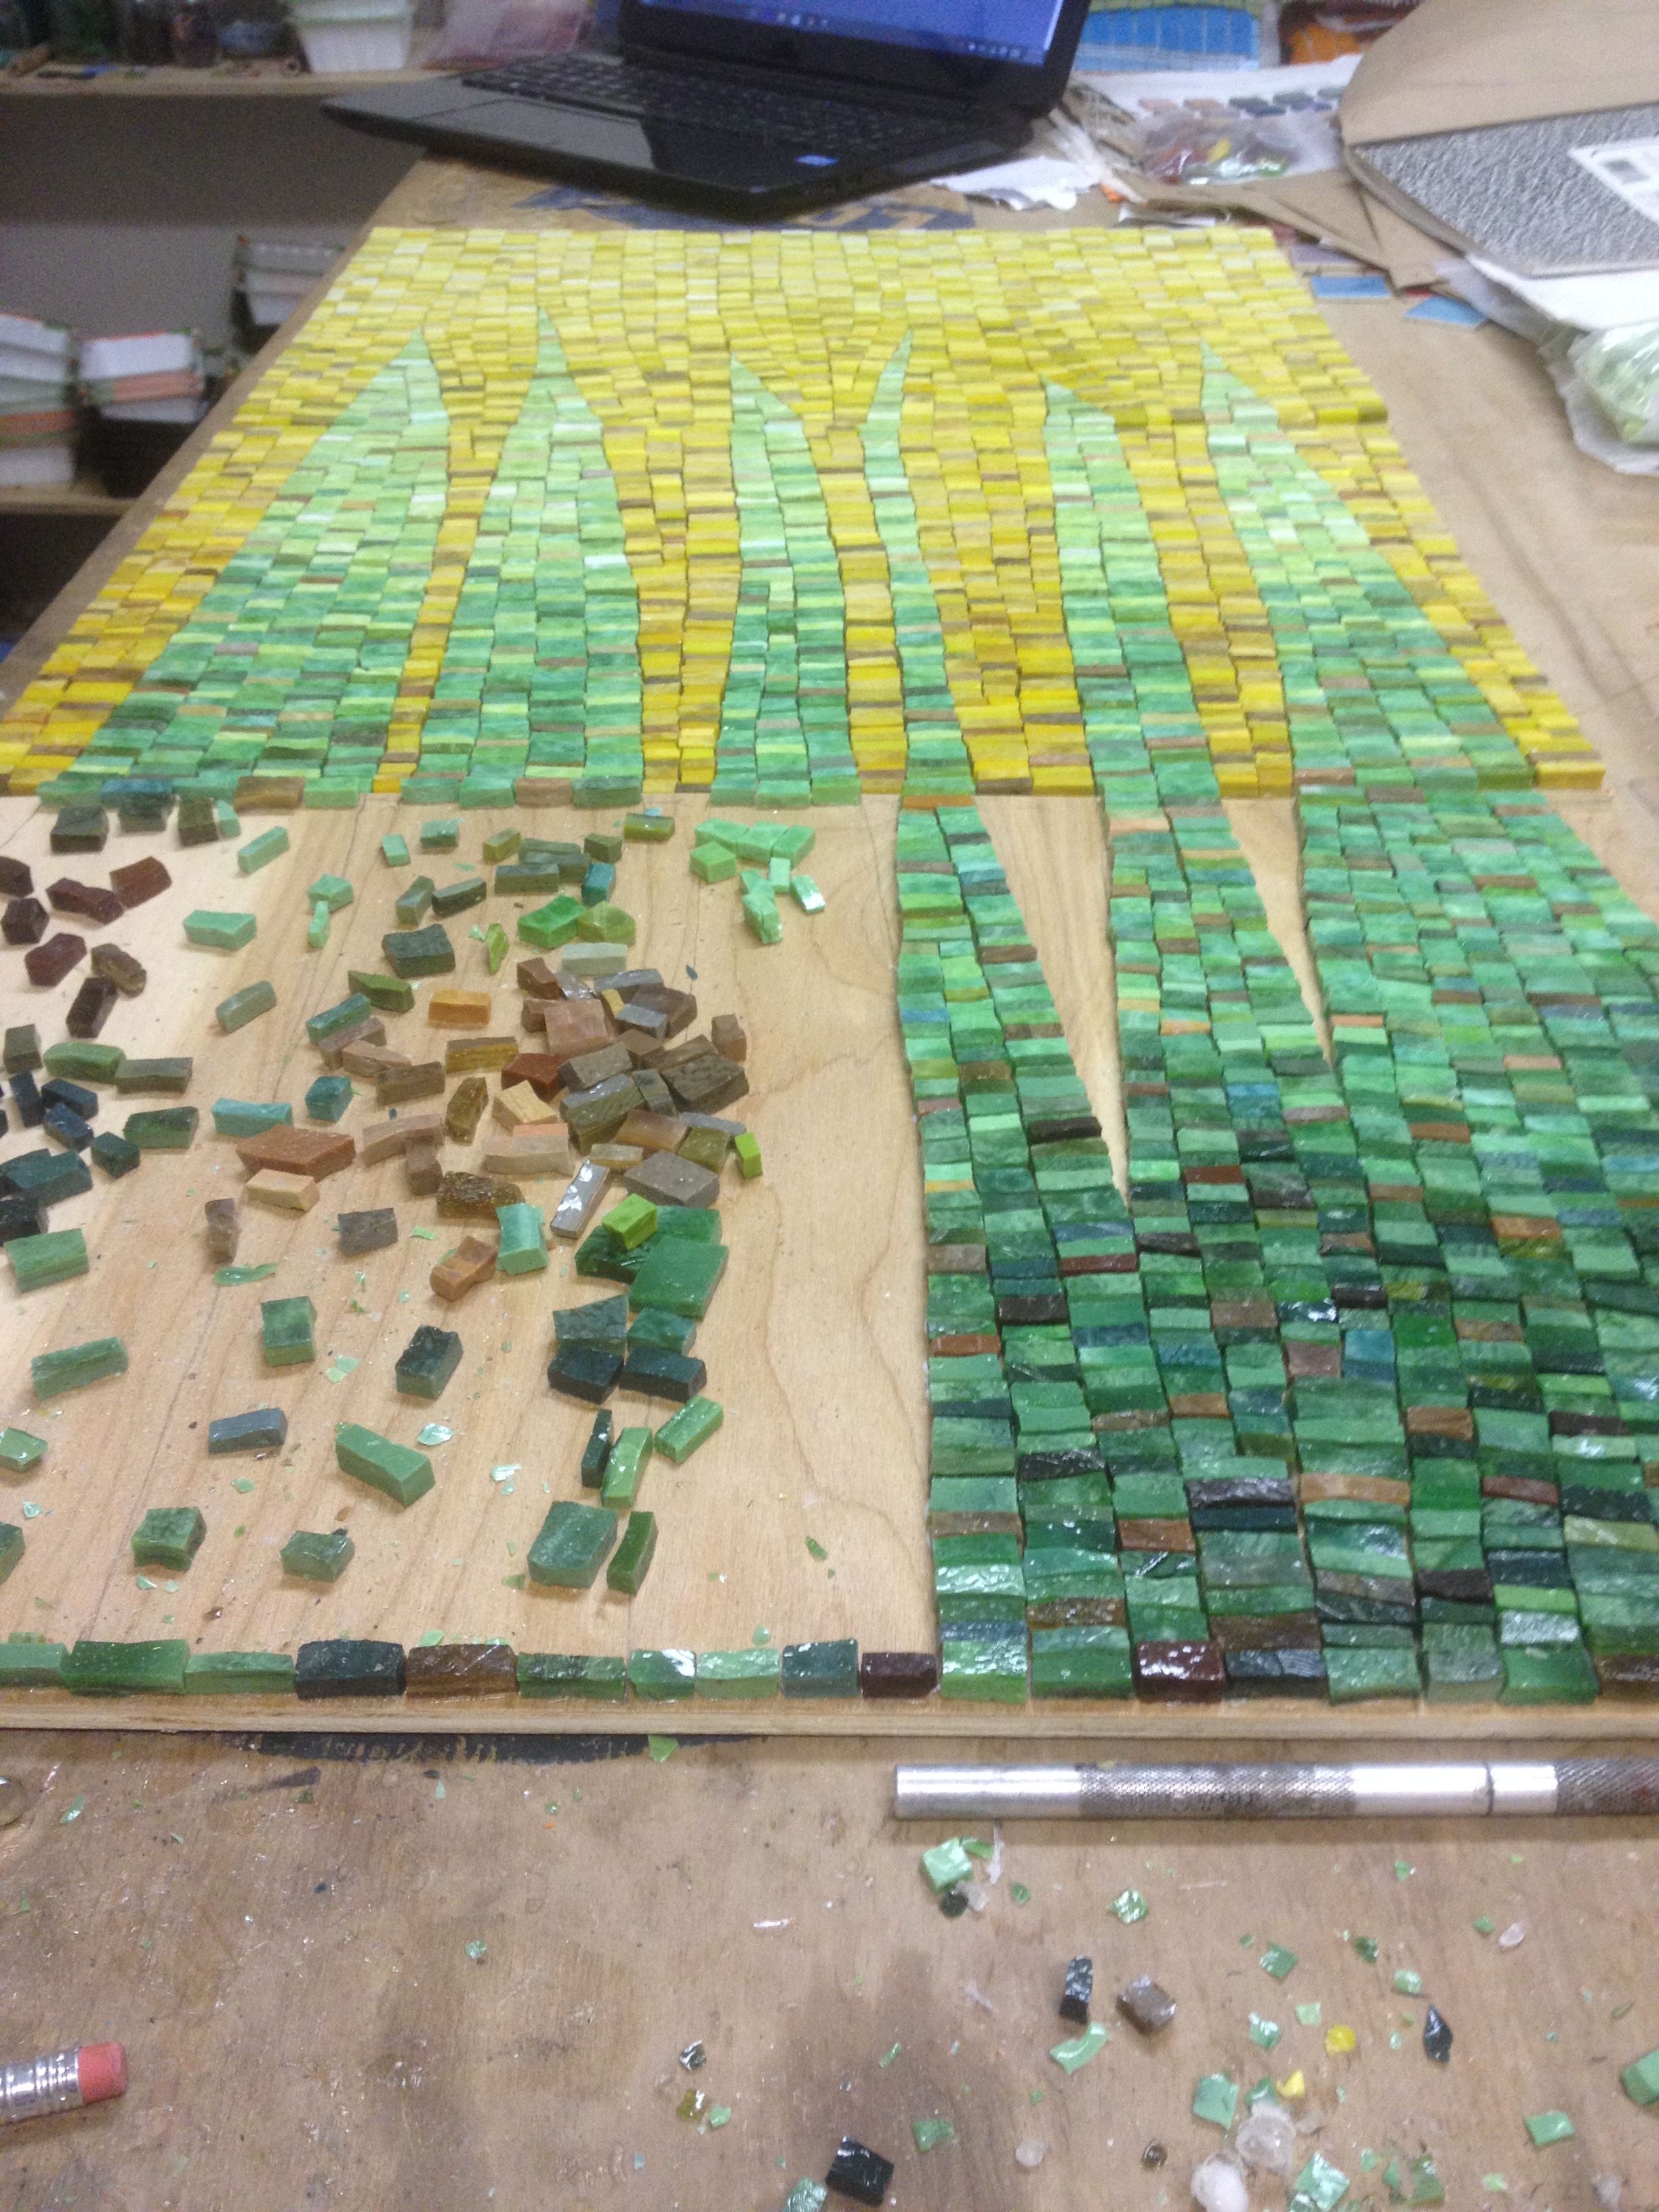 Custom mosaic in progress